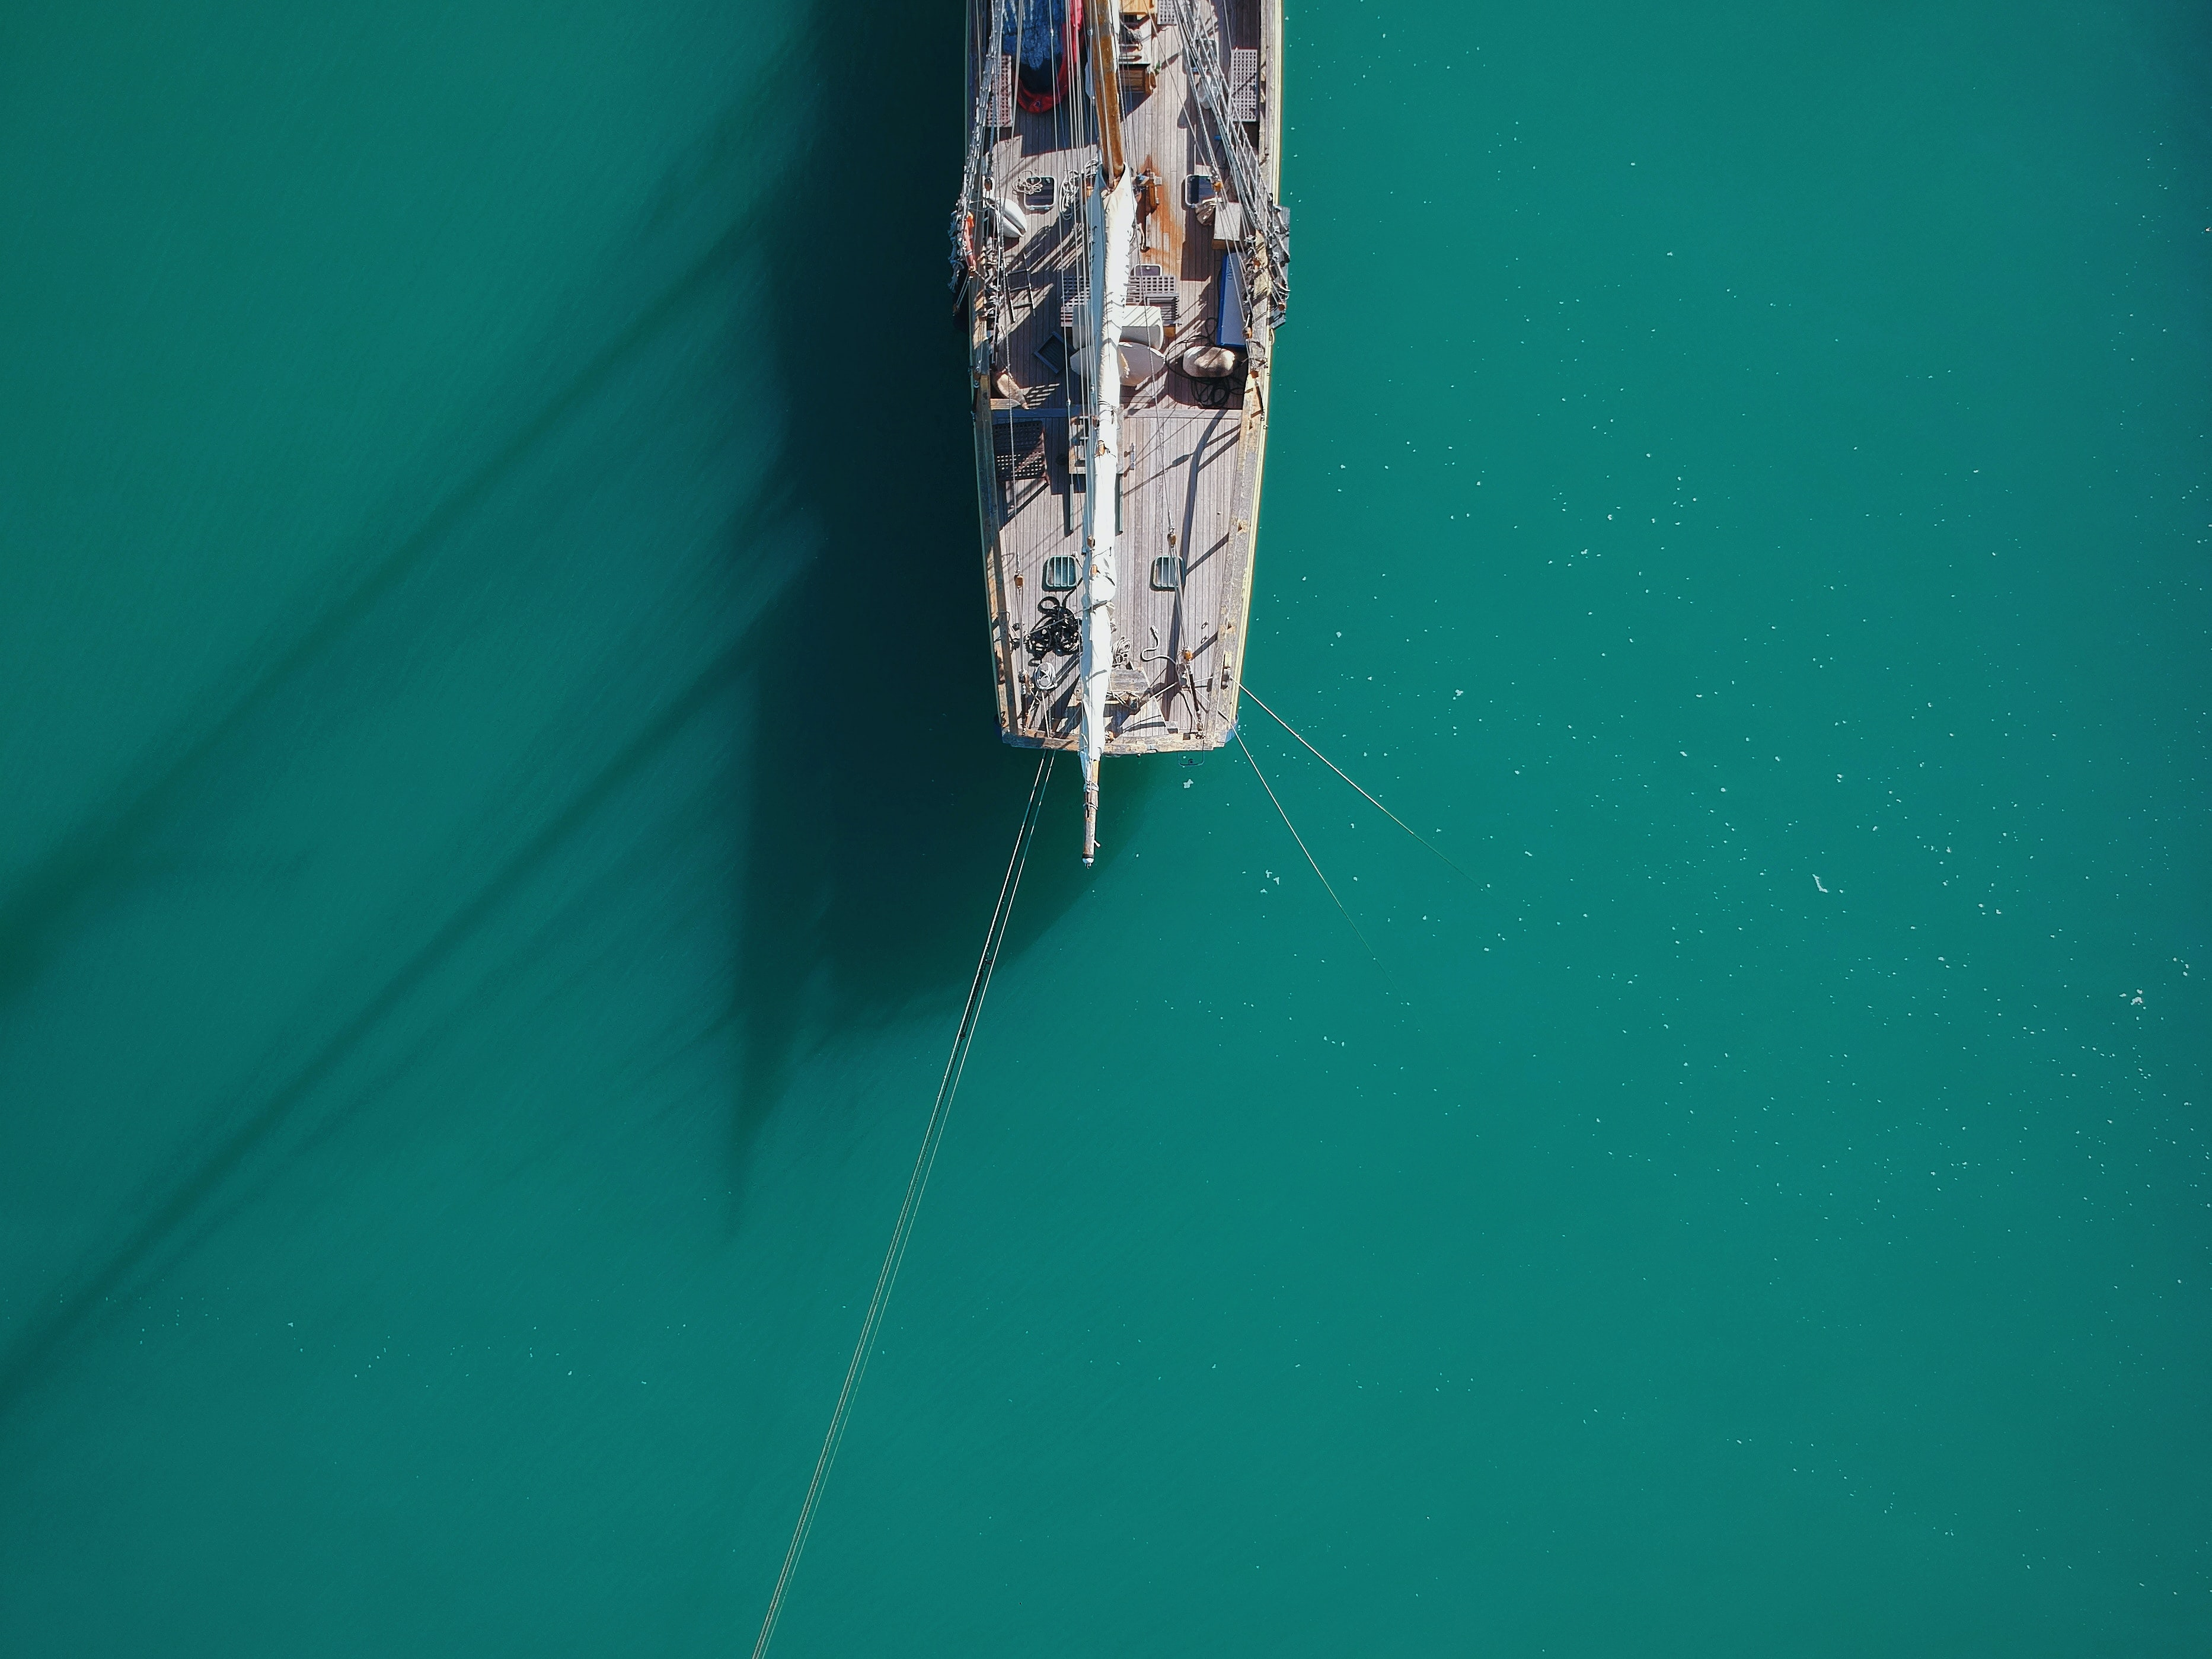 aerial view of ship